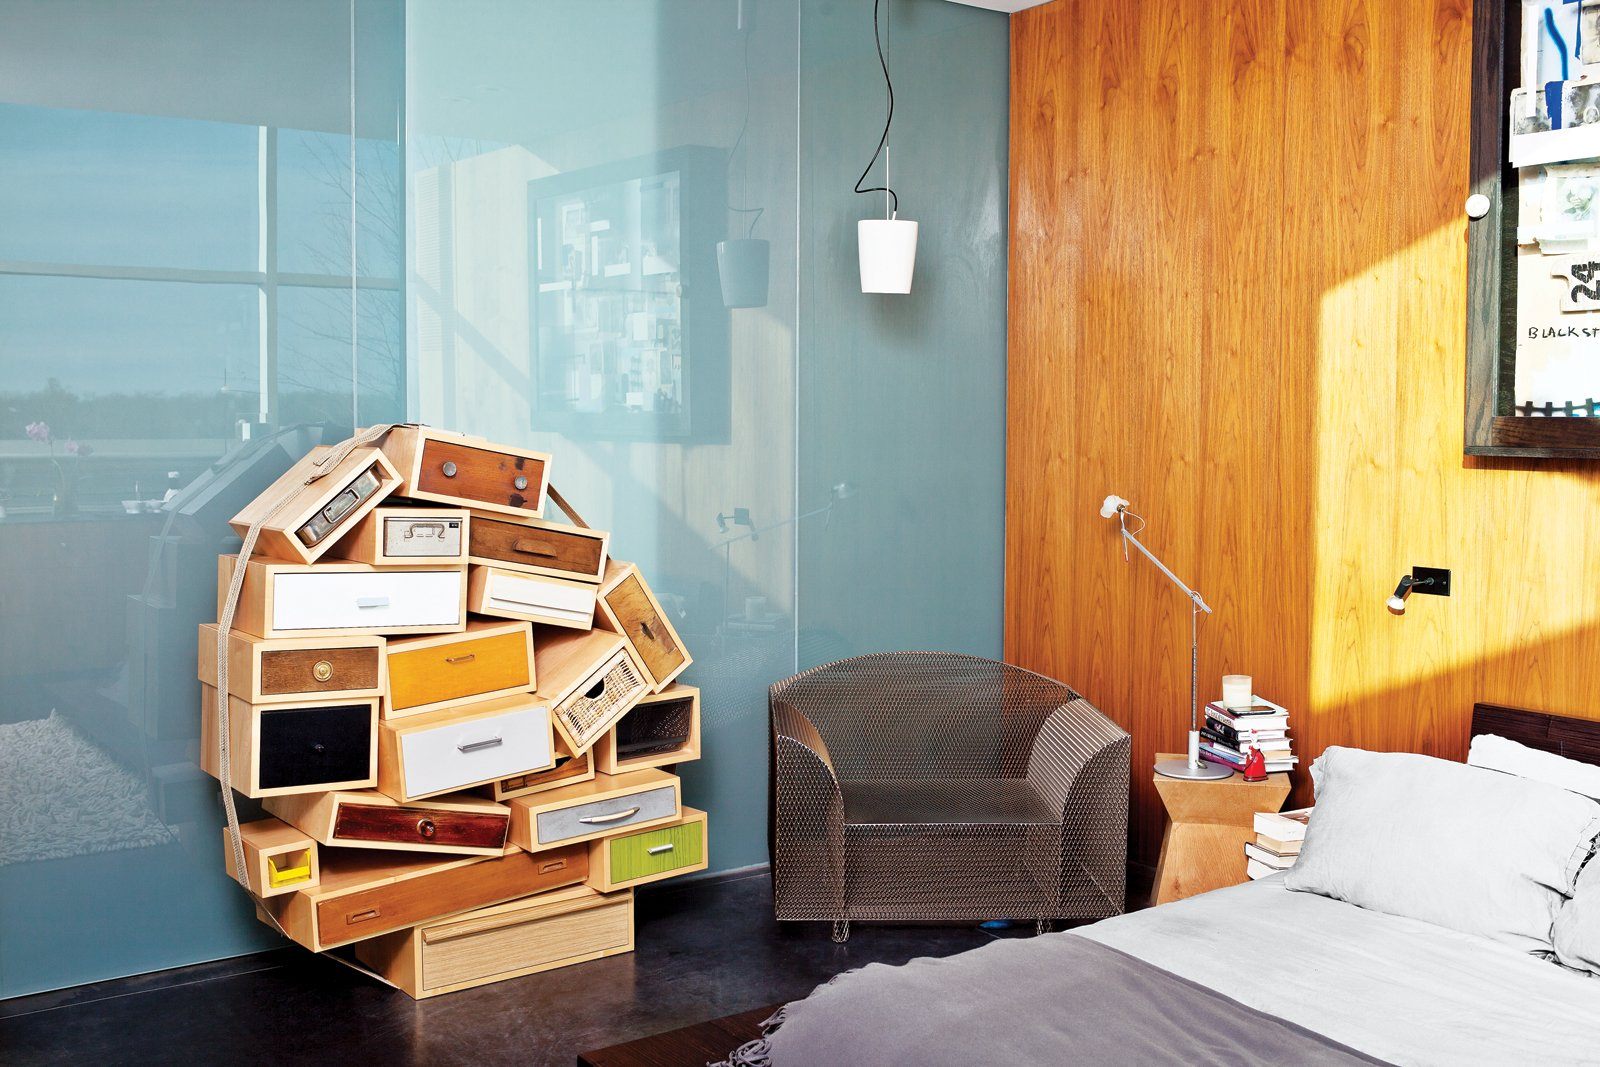 Bedroom, Bed, and Storage The master bedroom features a Chest of Drawers by Tejo Remy for Droog and a How High the Moon chair by Shiro Kuramata.  Photo 5 of 10 in An Architect References Local Architecture to Build a Modern Home